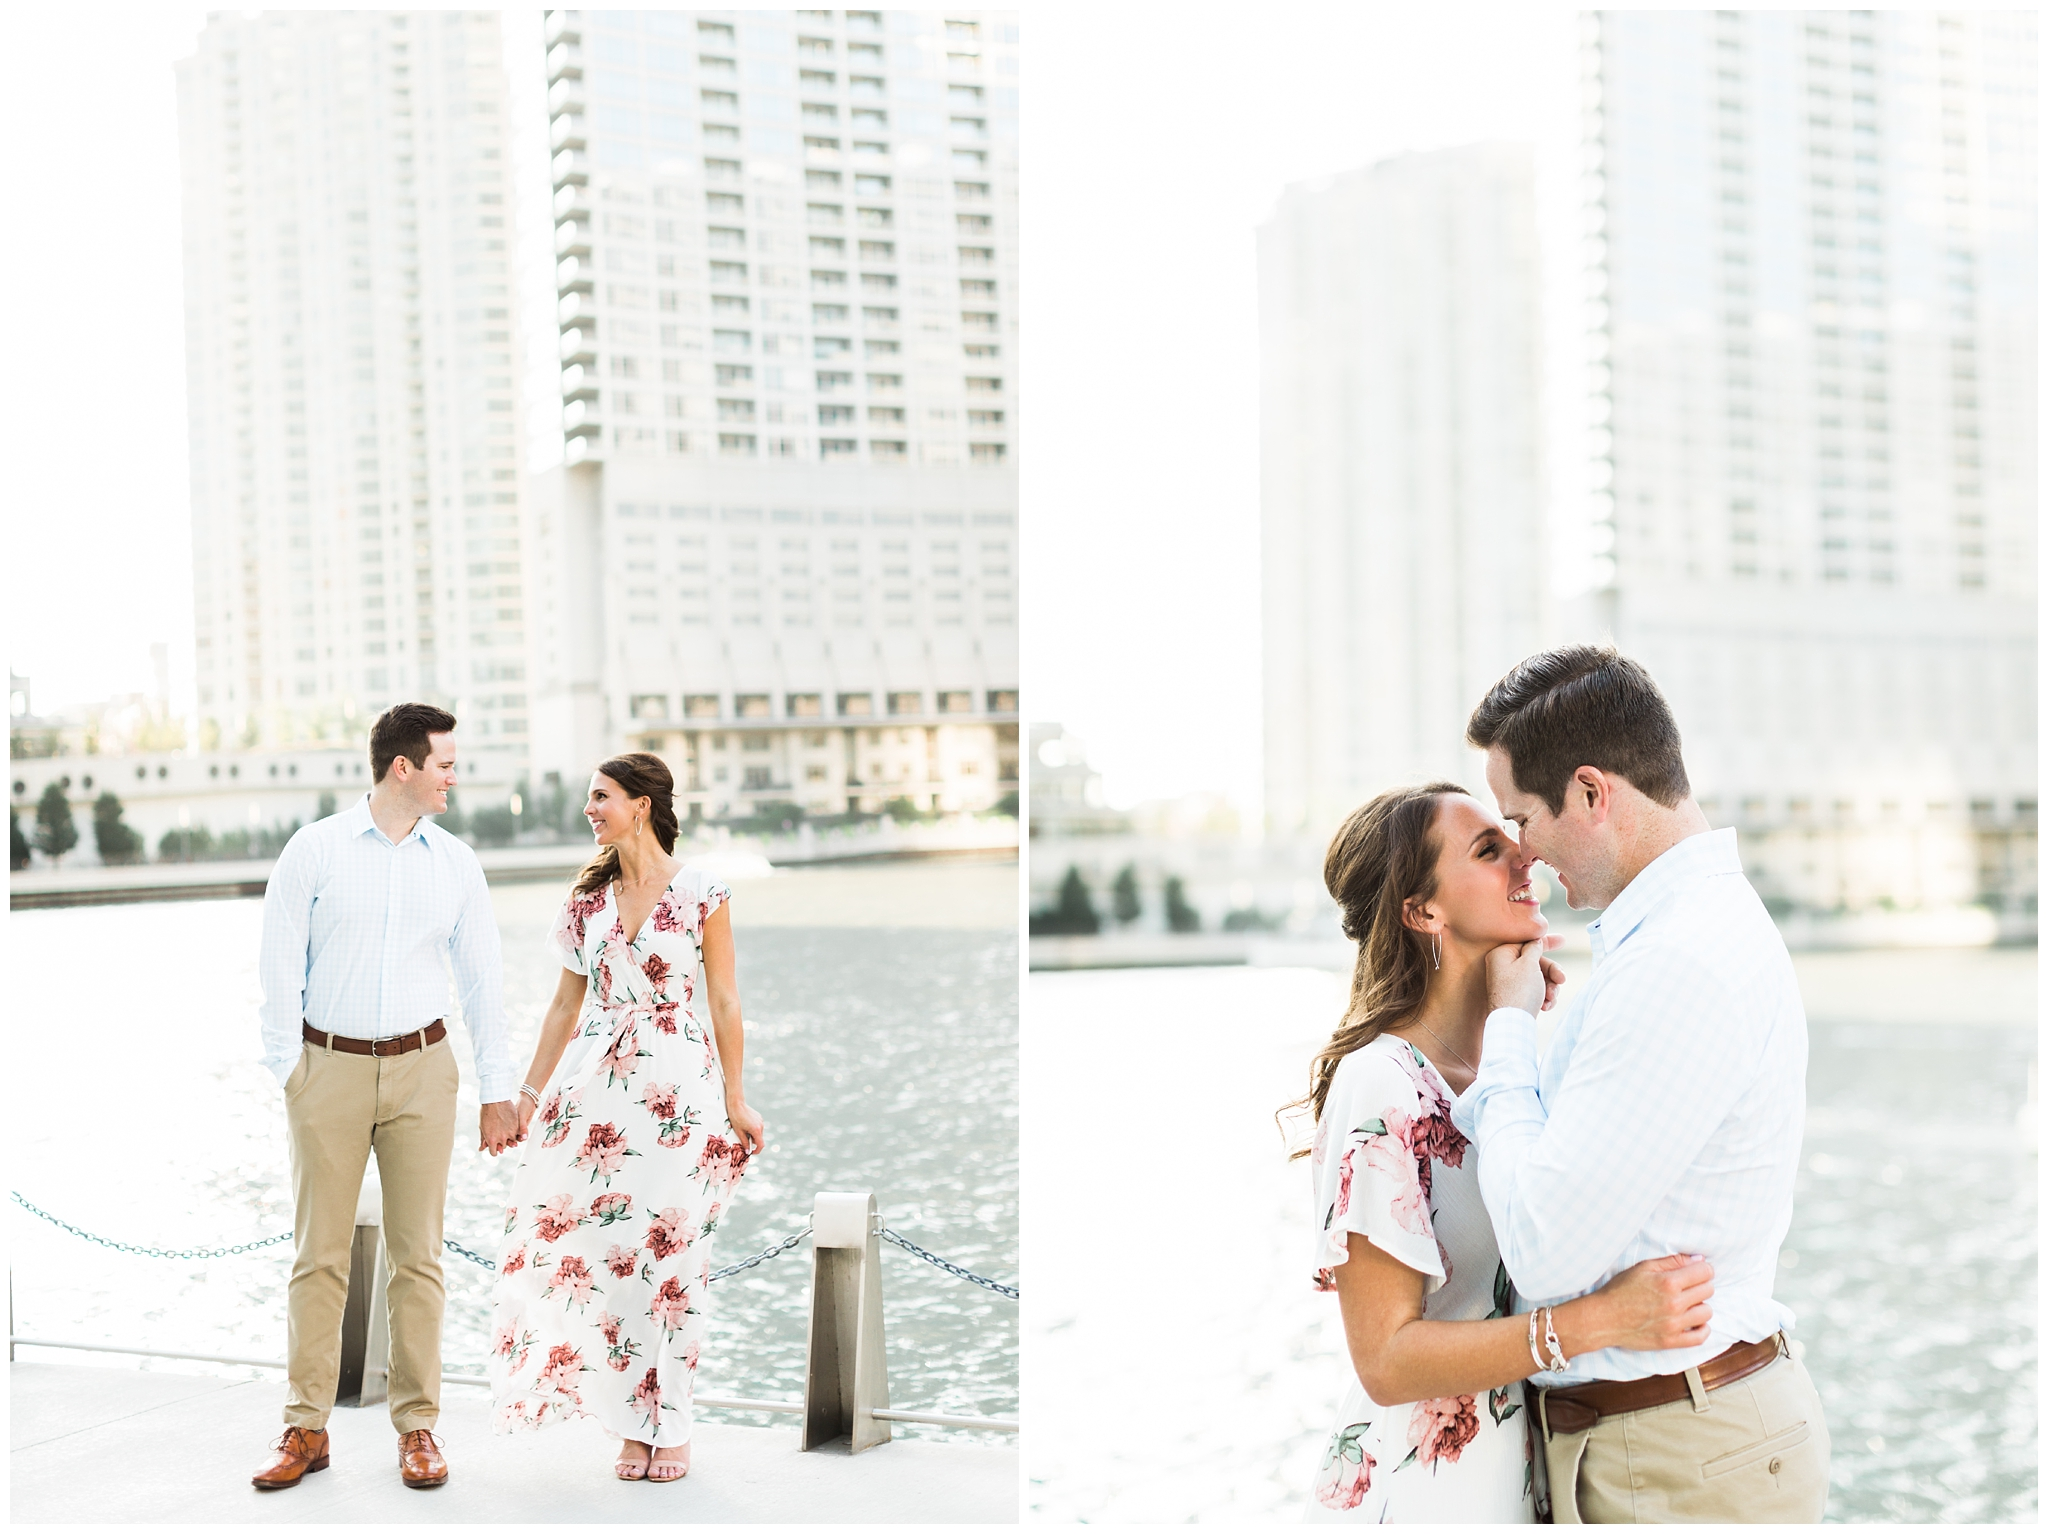 chicagoengagementsession_northavebeachengagementsession_northavebeach_northavenuebeach_northavenuebeachengagementsession_chicagoriverwalk_chicagoriverwalkengagementsession_0007.jpg